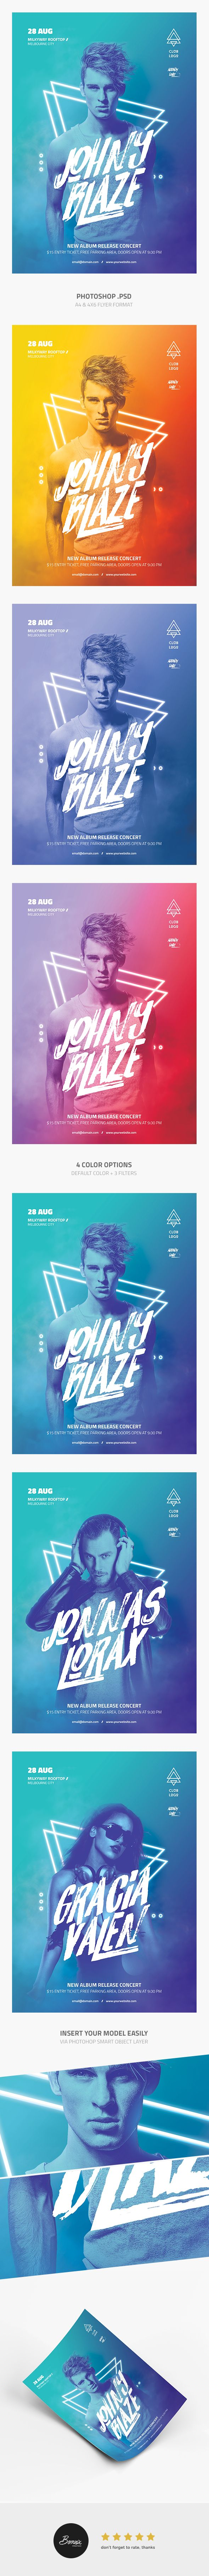 Premium DJ concert flyer template for Adobe Photoshop. Designed professionally, perfect to promote your DJ concert, parties, edm, or any music events. Fully editable and easy to use, with 4 beautiful gradient color options and minimal layout. Available in 2 formats, A4 & 4×6 flyer. Download this template here https://graphicriver.net/item/dj-concert-flyer/19673649?ref=bornx #graphicriver #envato #adobe #photoshop #flyer #poster #template #music #concert #dj #edm #neon #party #duotone…